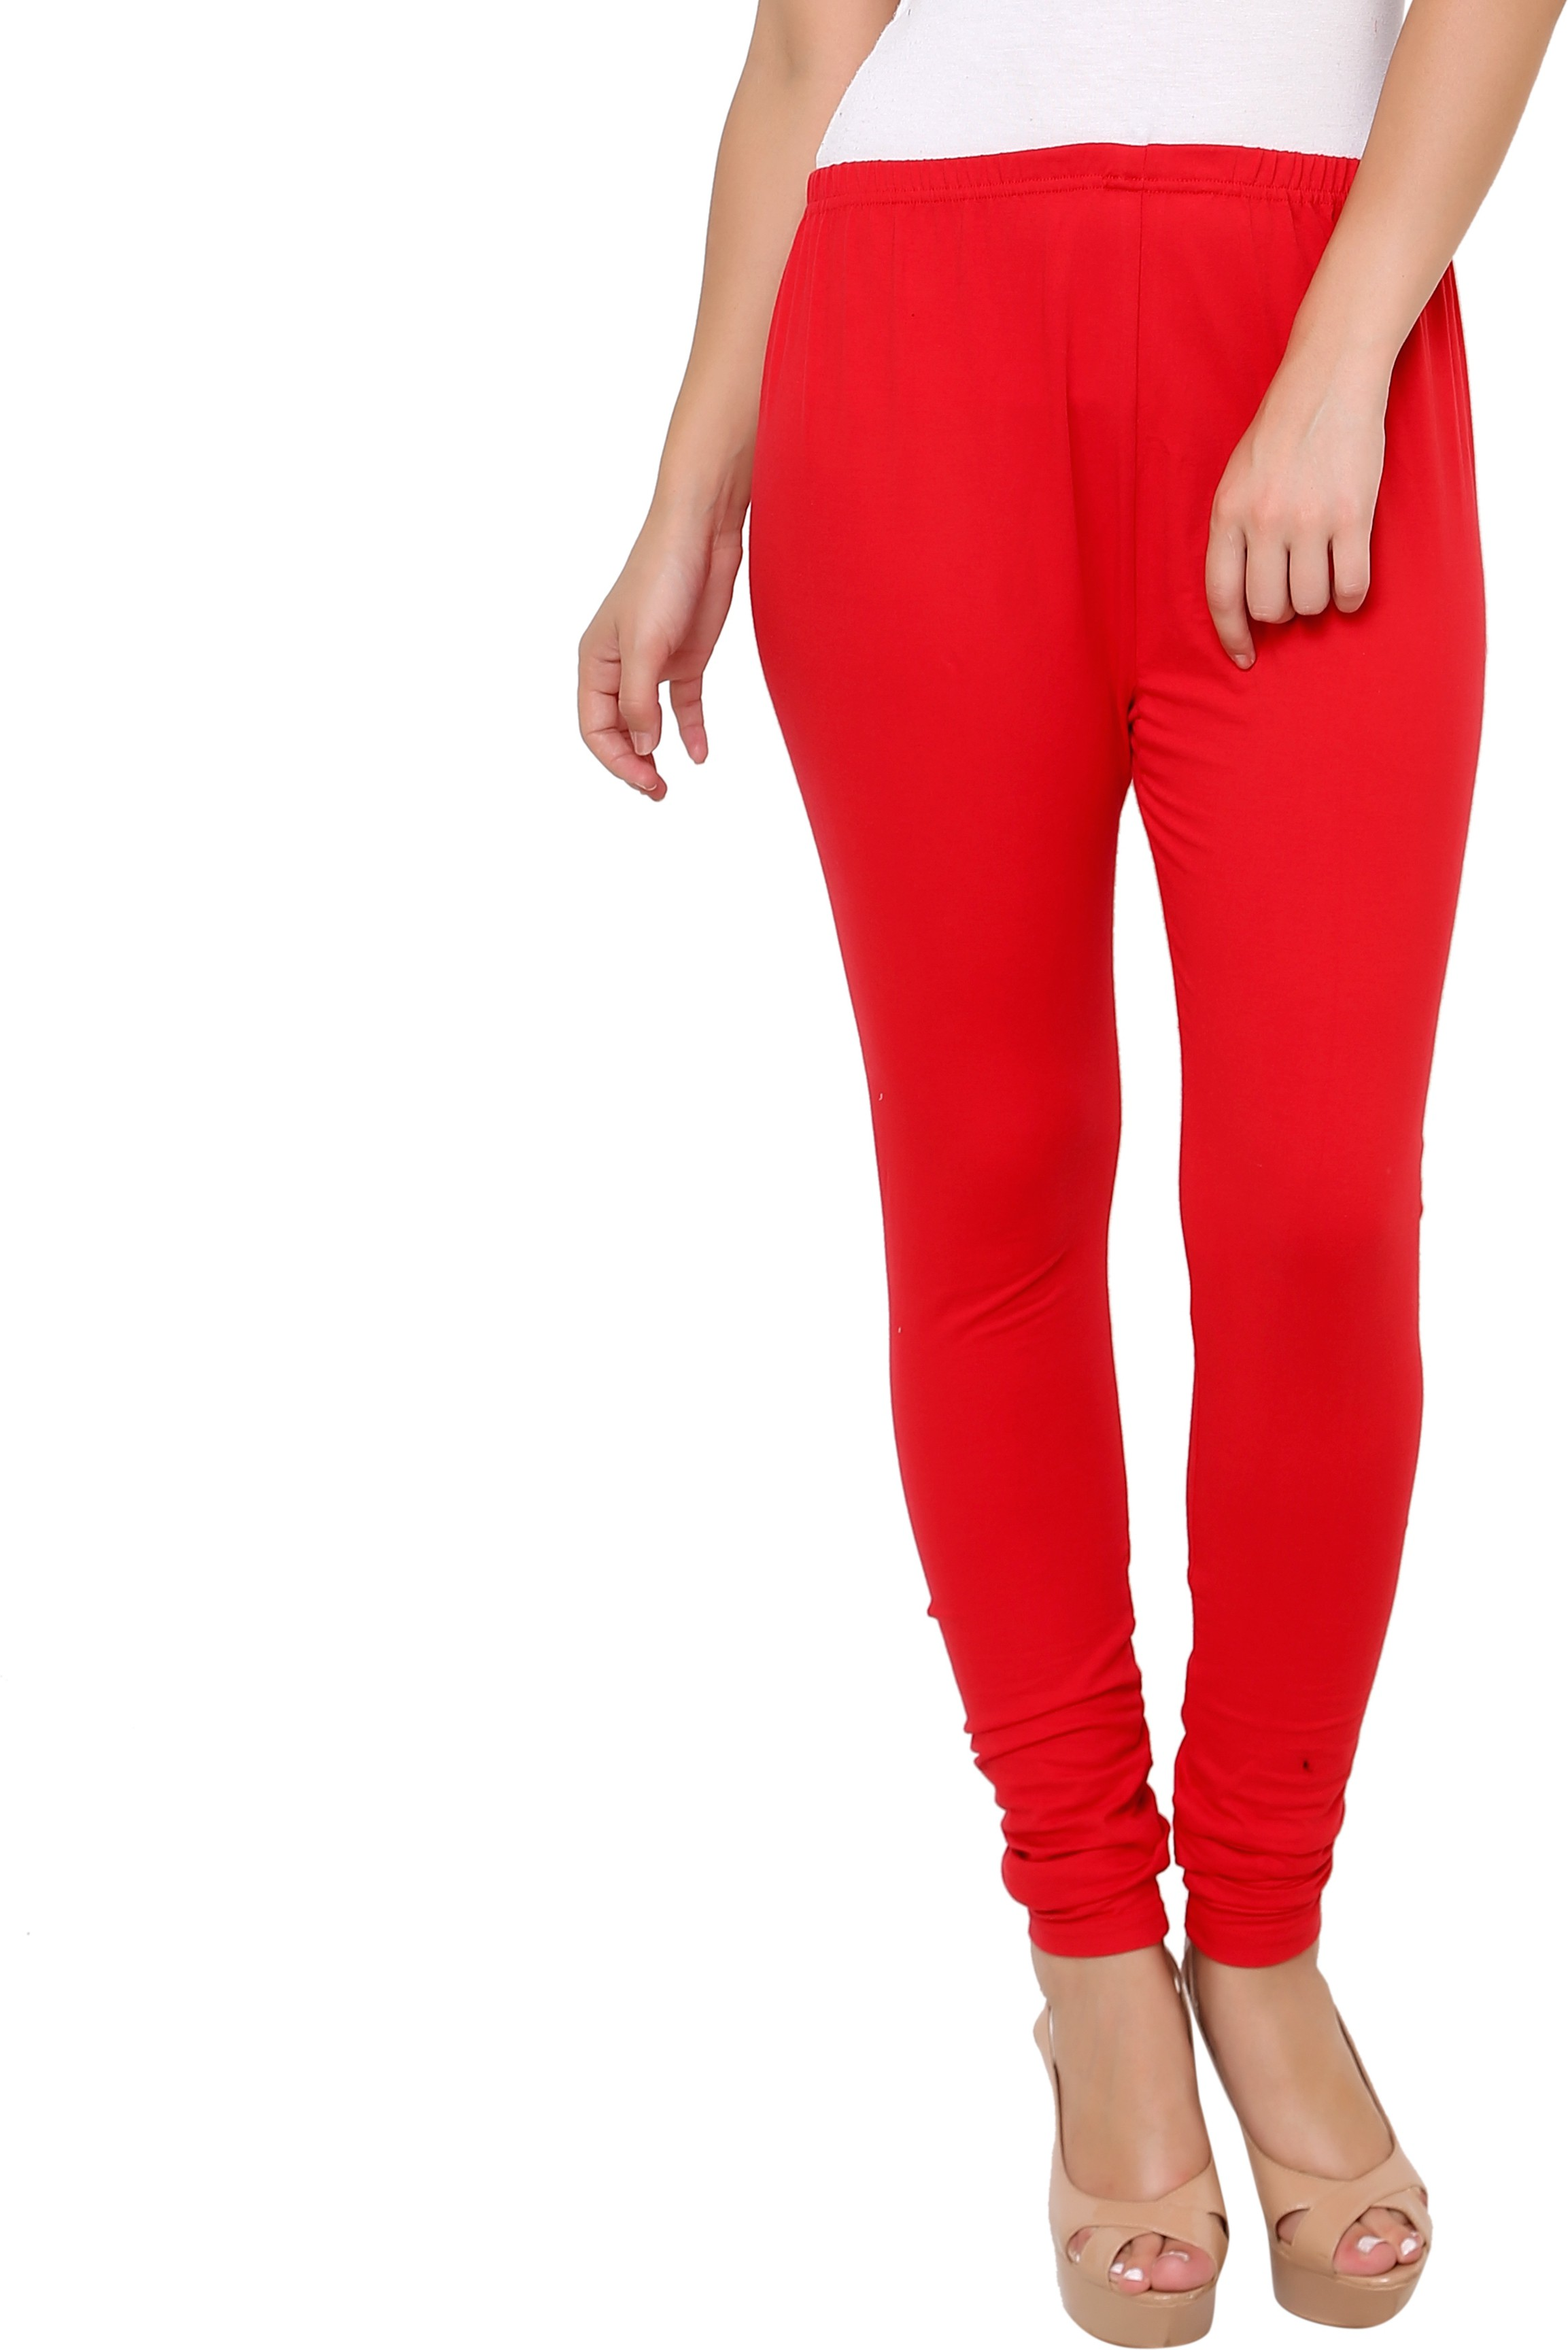 Leebonee Womens Red Leggings